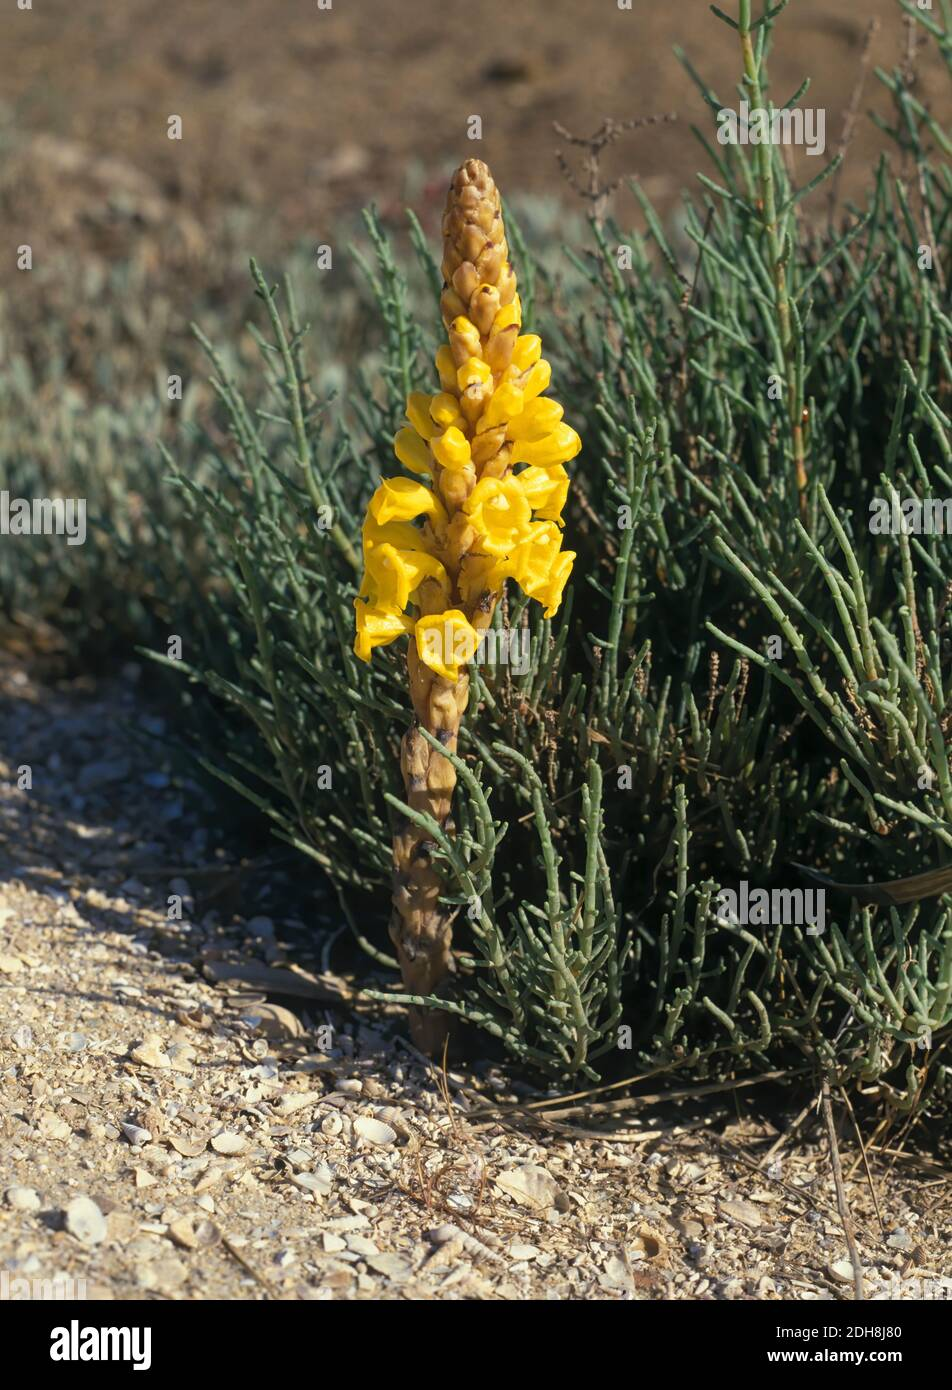 Cistanche phelypaea, with flowers. It is a parasitic plant, which grows mainly in salt marsh areas. It has no chlorophyll, so it extracts its Stock Photo